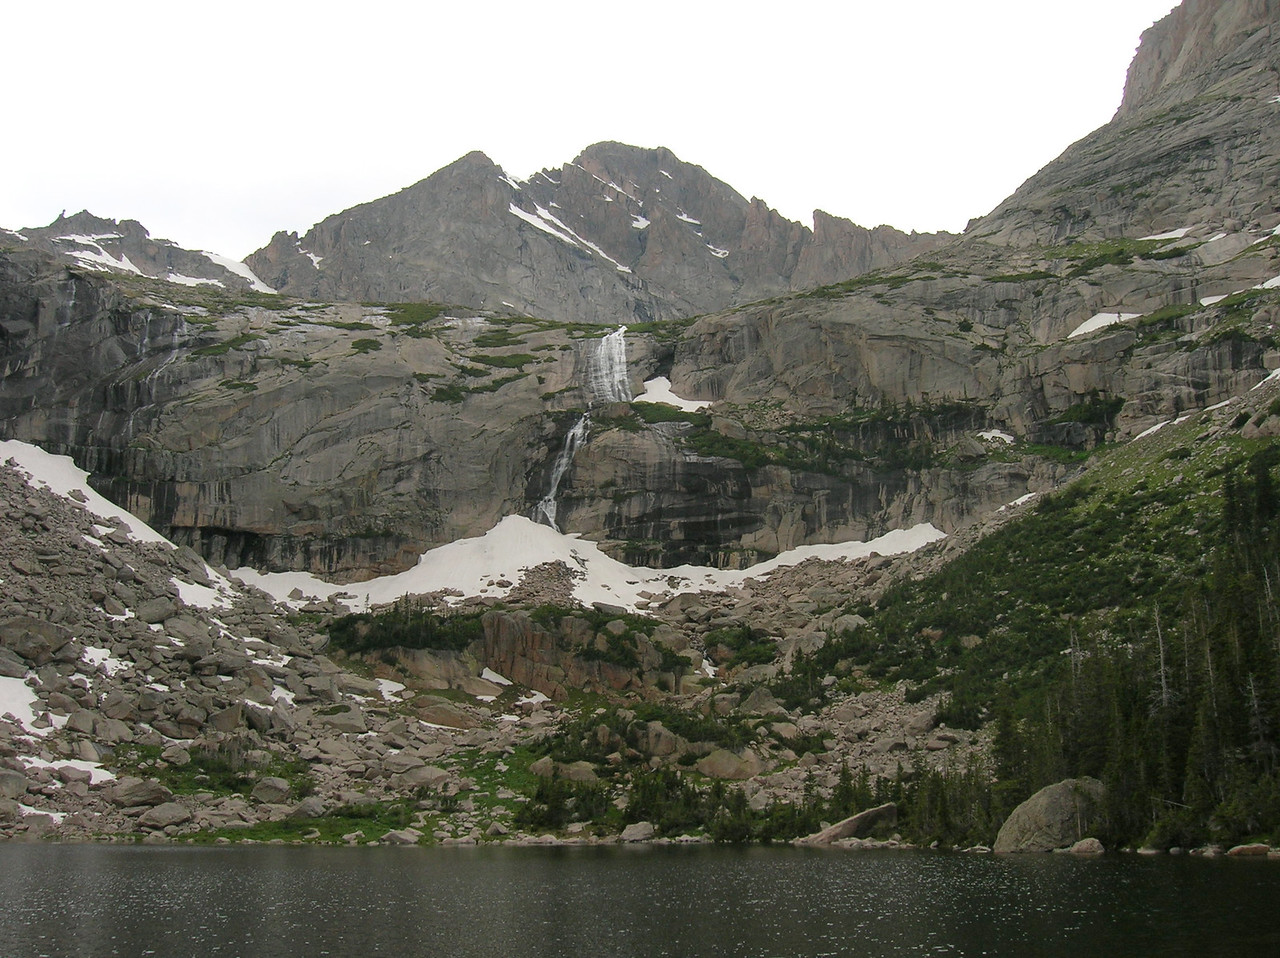 Waterfall, cascade, pond and peak